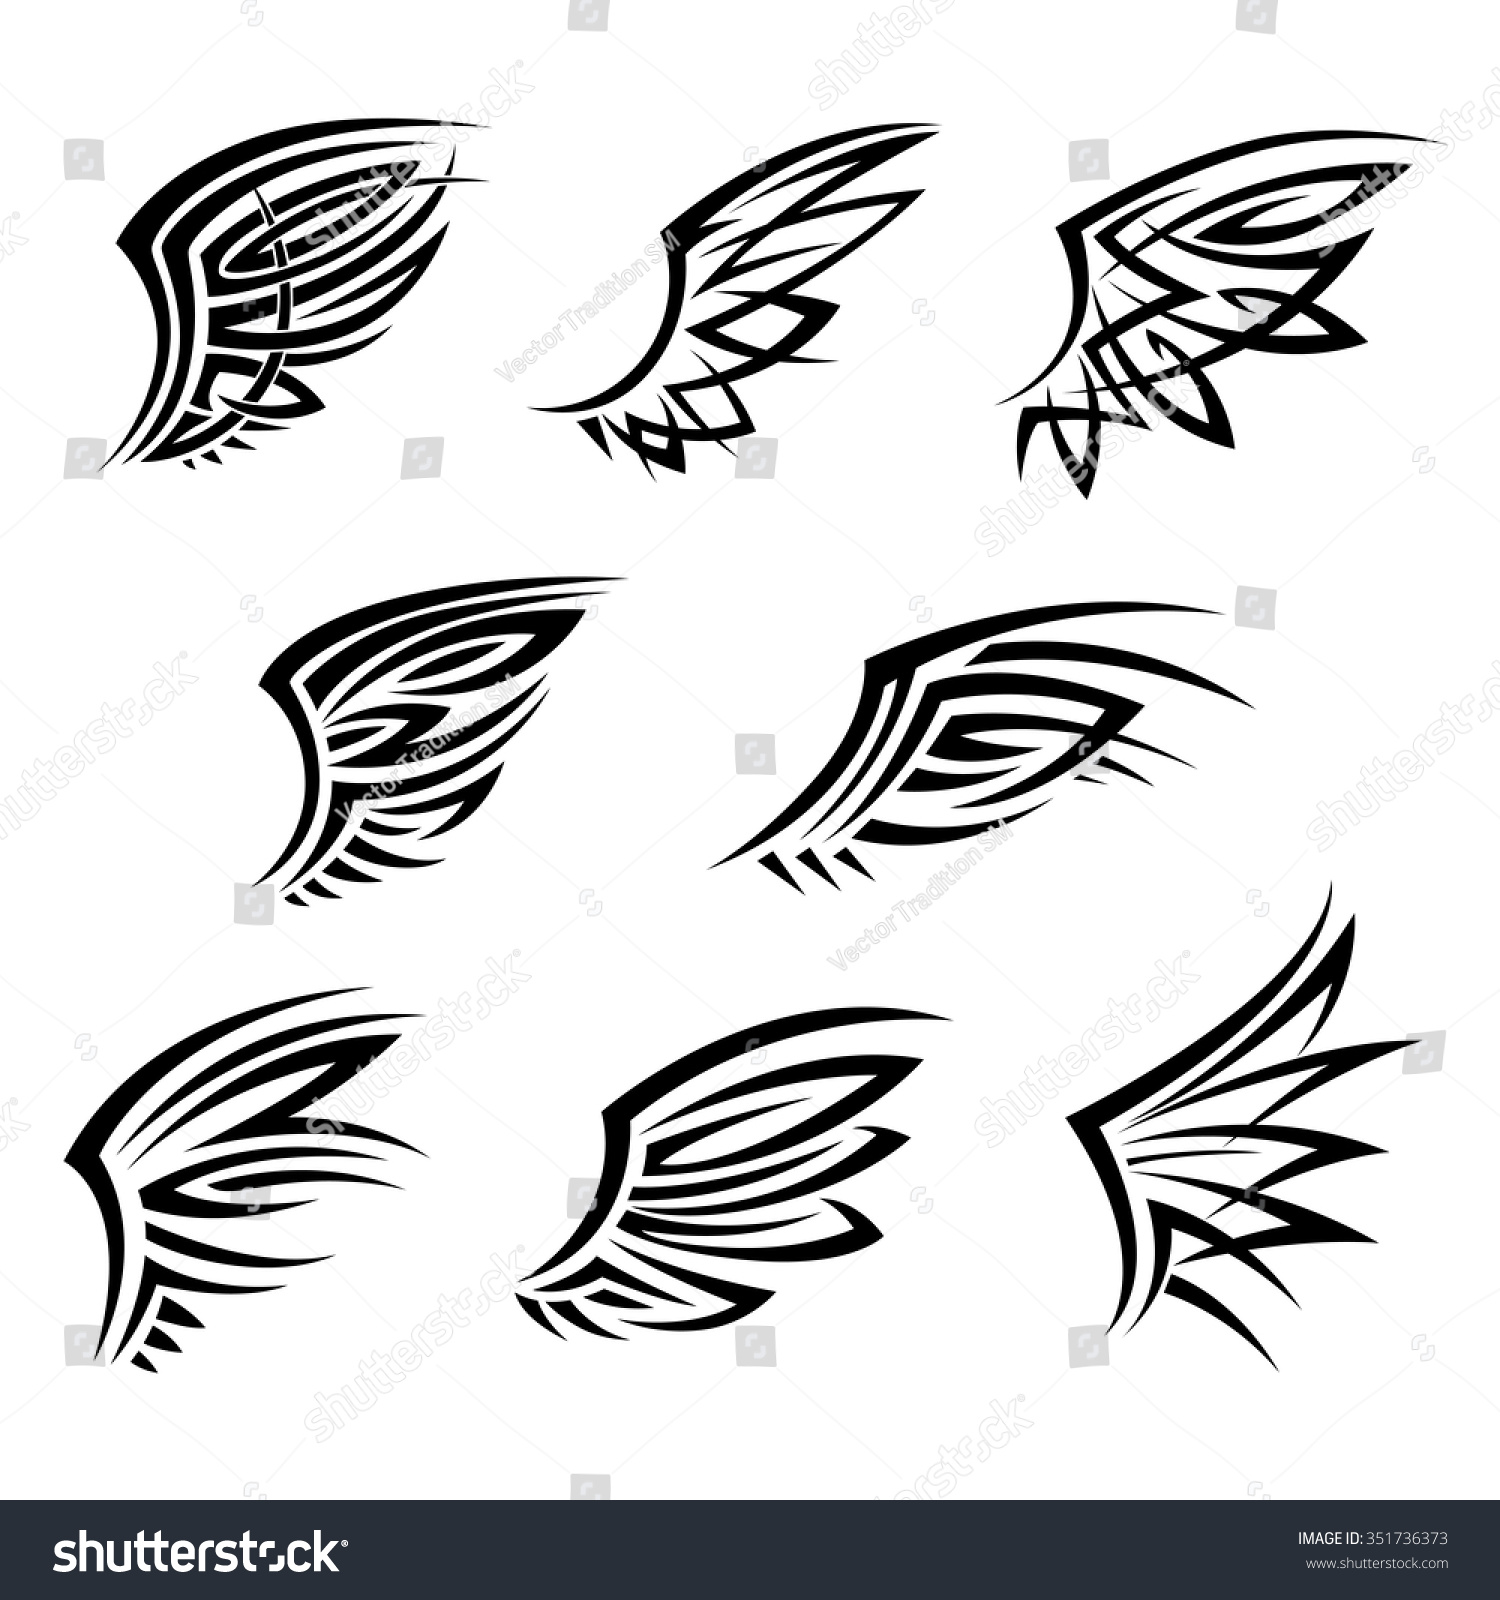 black tribal wings abstract decorative feathers stock vector 351736373 shutterstock. Black Bedroom Furniture Sets. Home Design Ideas